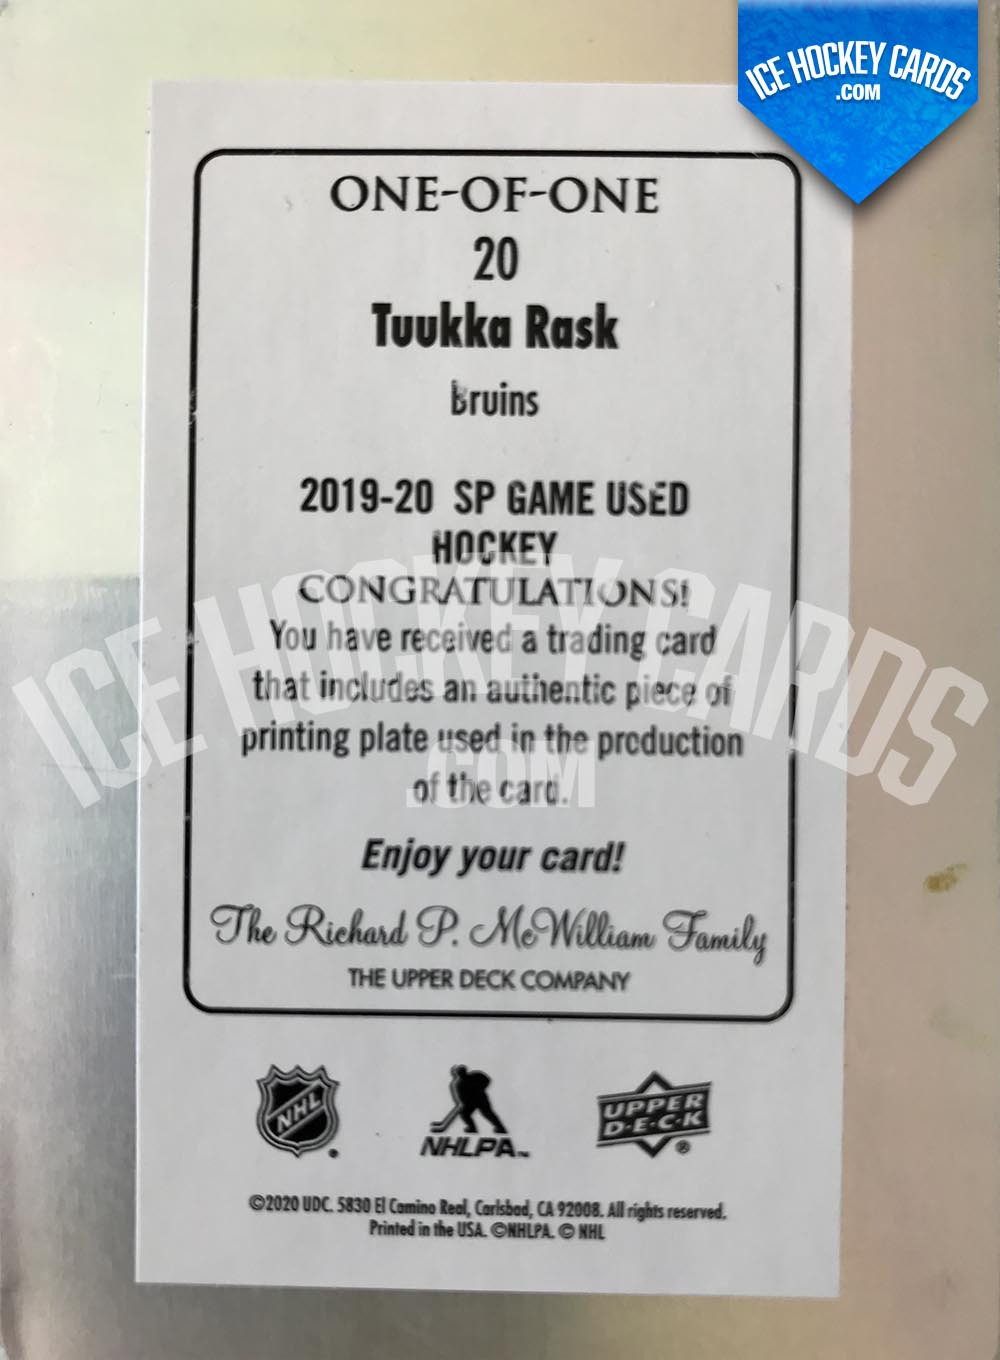 Upper Deck - SP Game Used 2019-20 - Tuukka Rask Authentic One-of-One Printing Plate UNIQUE back